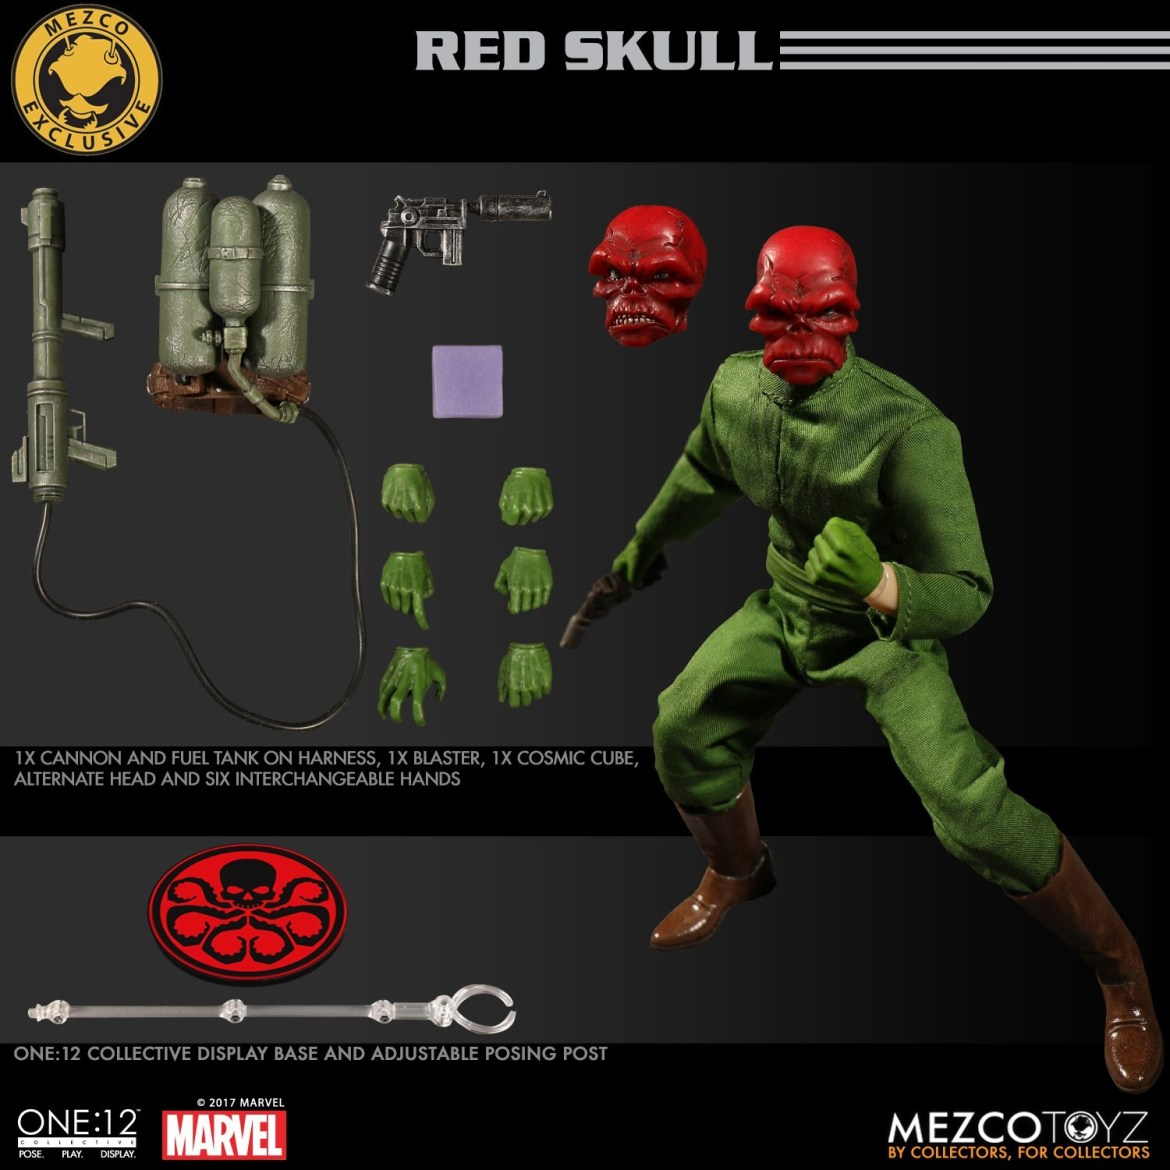 The One:12 Collective Red Skull Fall Exclusive